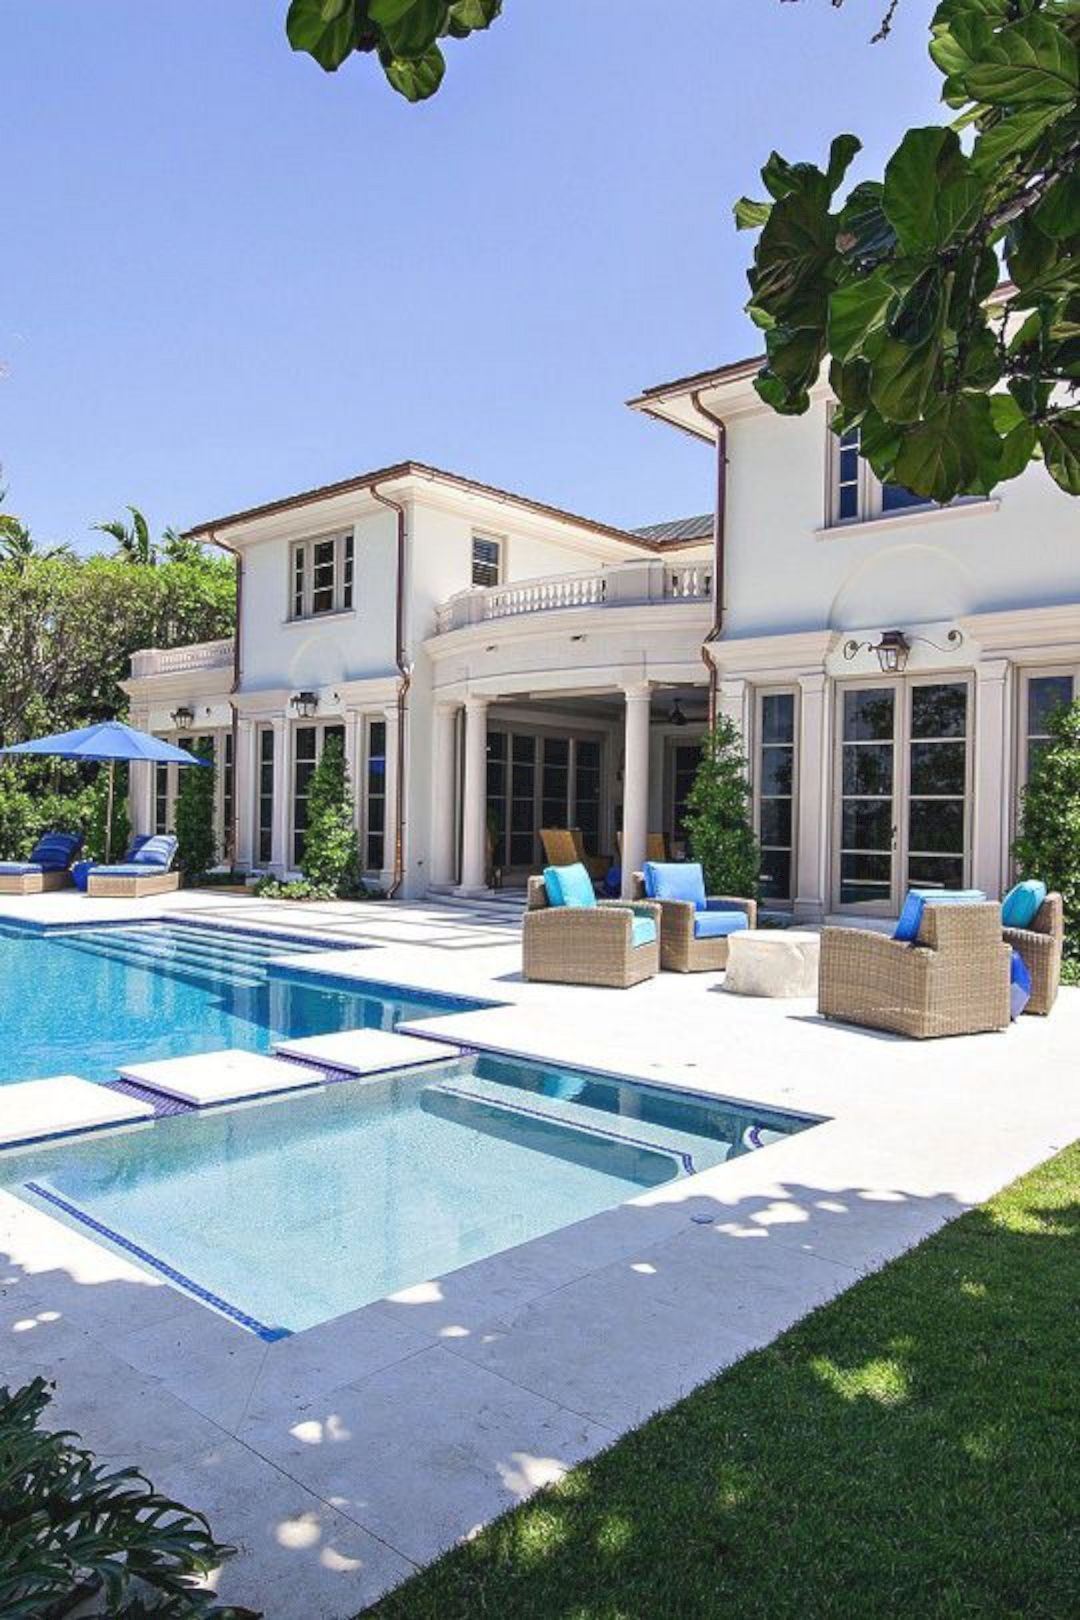 16 Awesome Pool Furniture Ideas   Furniture ideas, Towel storage and on outdoor living house plans with pool, architecture modern house designs, outdoor sport court designs, outdoor toy houses, outdoor game room designs, outdoor pool house cabana, garage house designs, 2015 house designs, wheelchair accessible house designs, pool water fountain designs, outdoor arena designs, outdoor cottage designs, outdoor gas grill designs, outdoor kitchen designs, outdoor bar designs, black house exterior home designs, outdoor dog house designs, home pool designs, outdoor stall designs, outdoor luxury pool house,